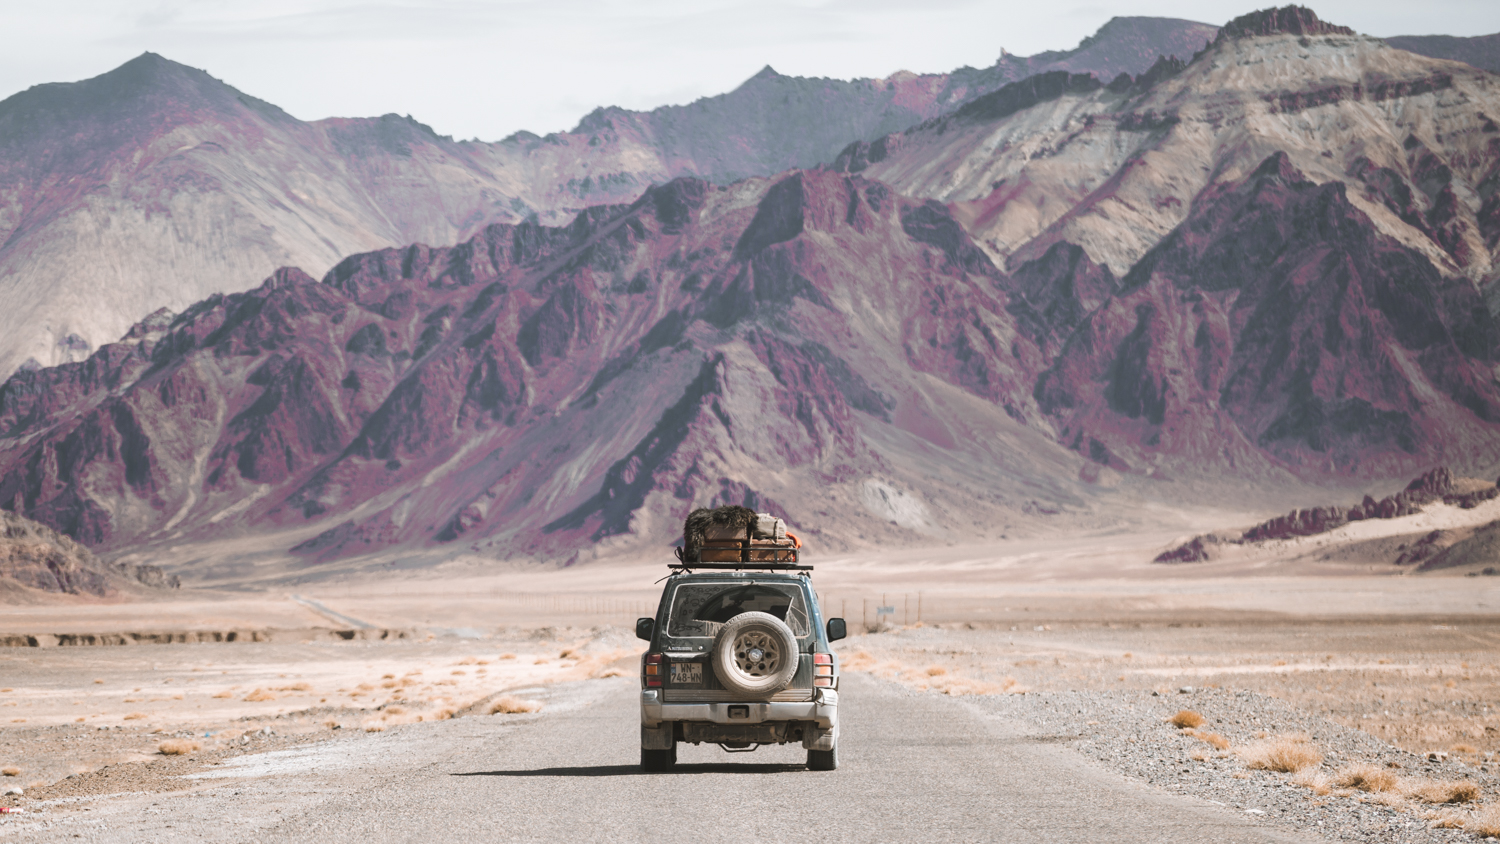 Overland; Through the Middle of the World